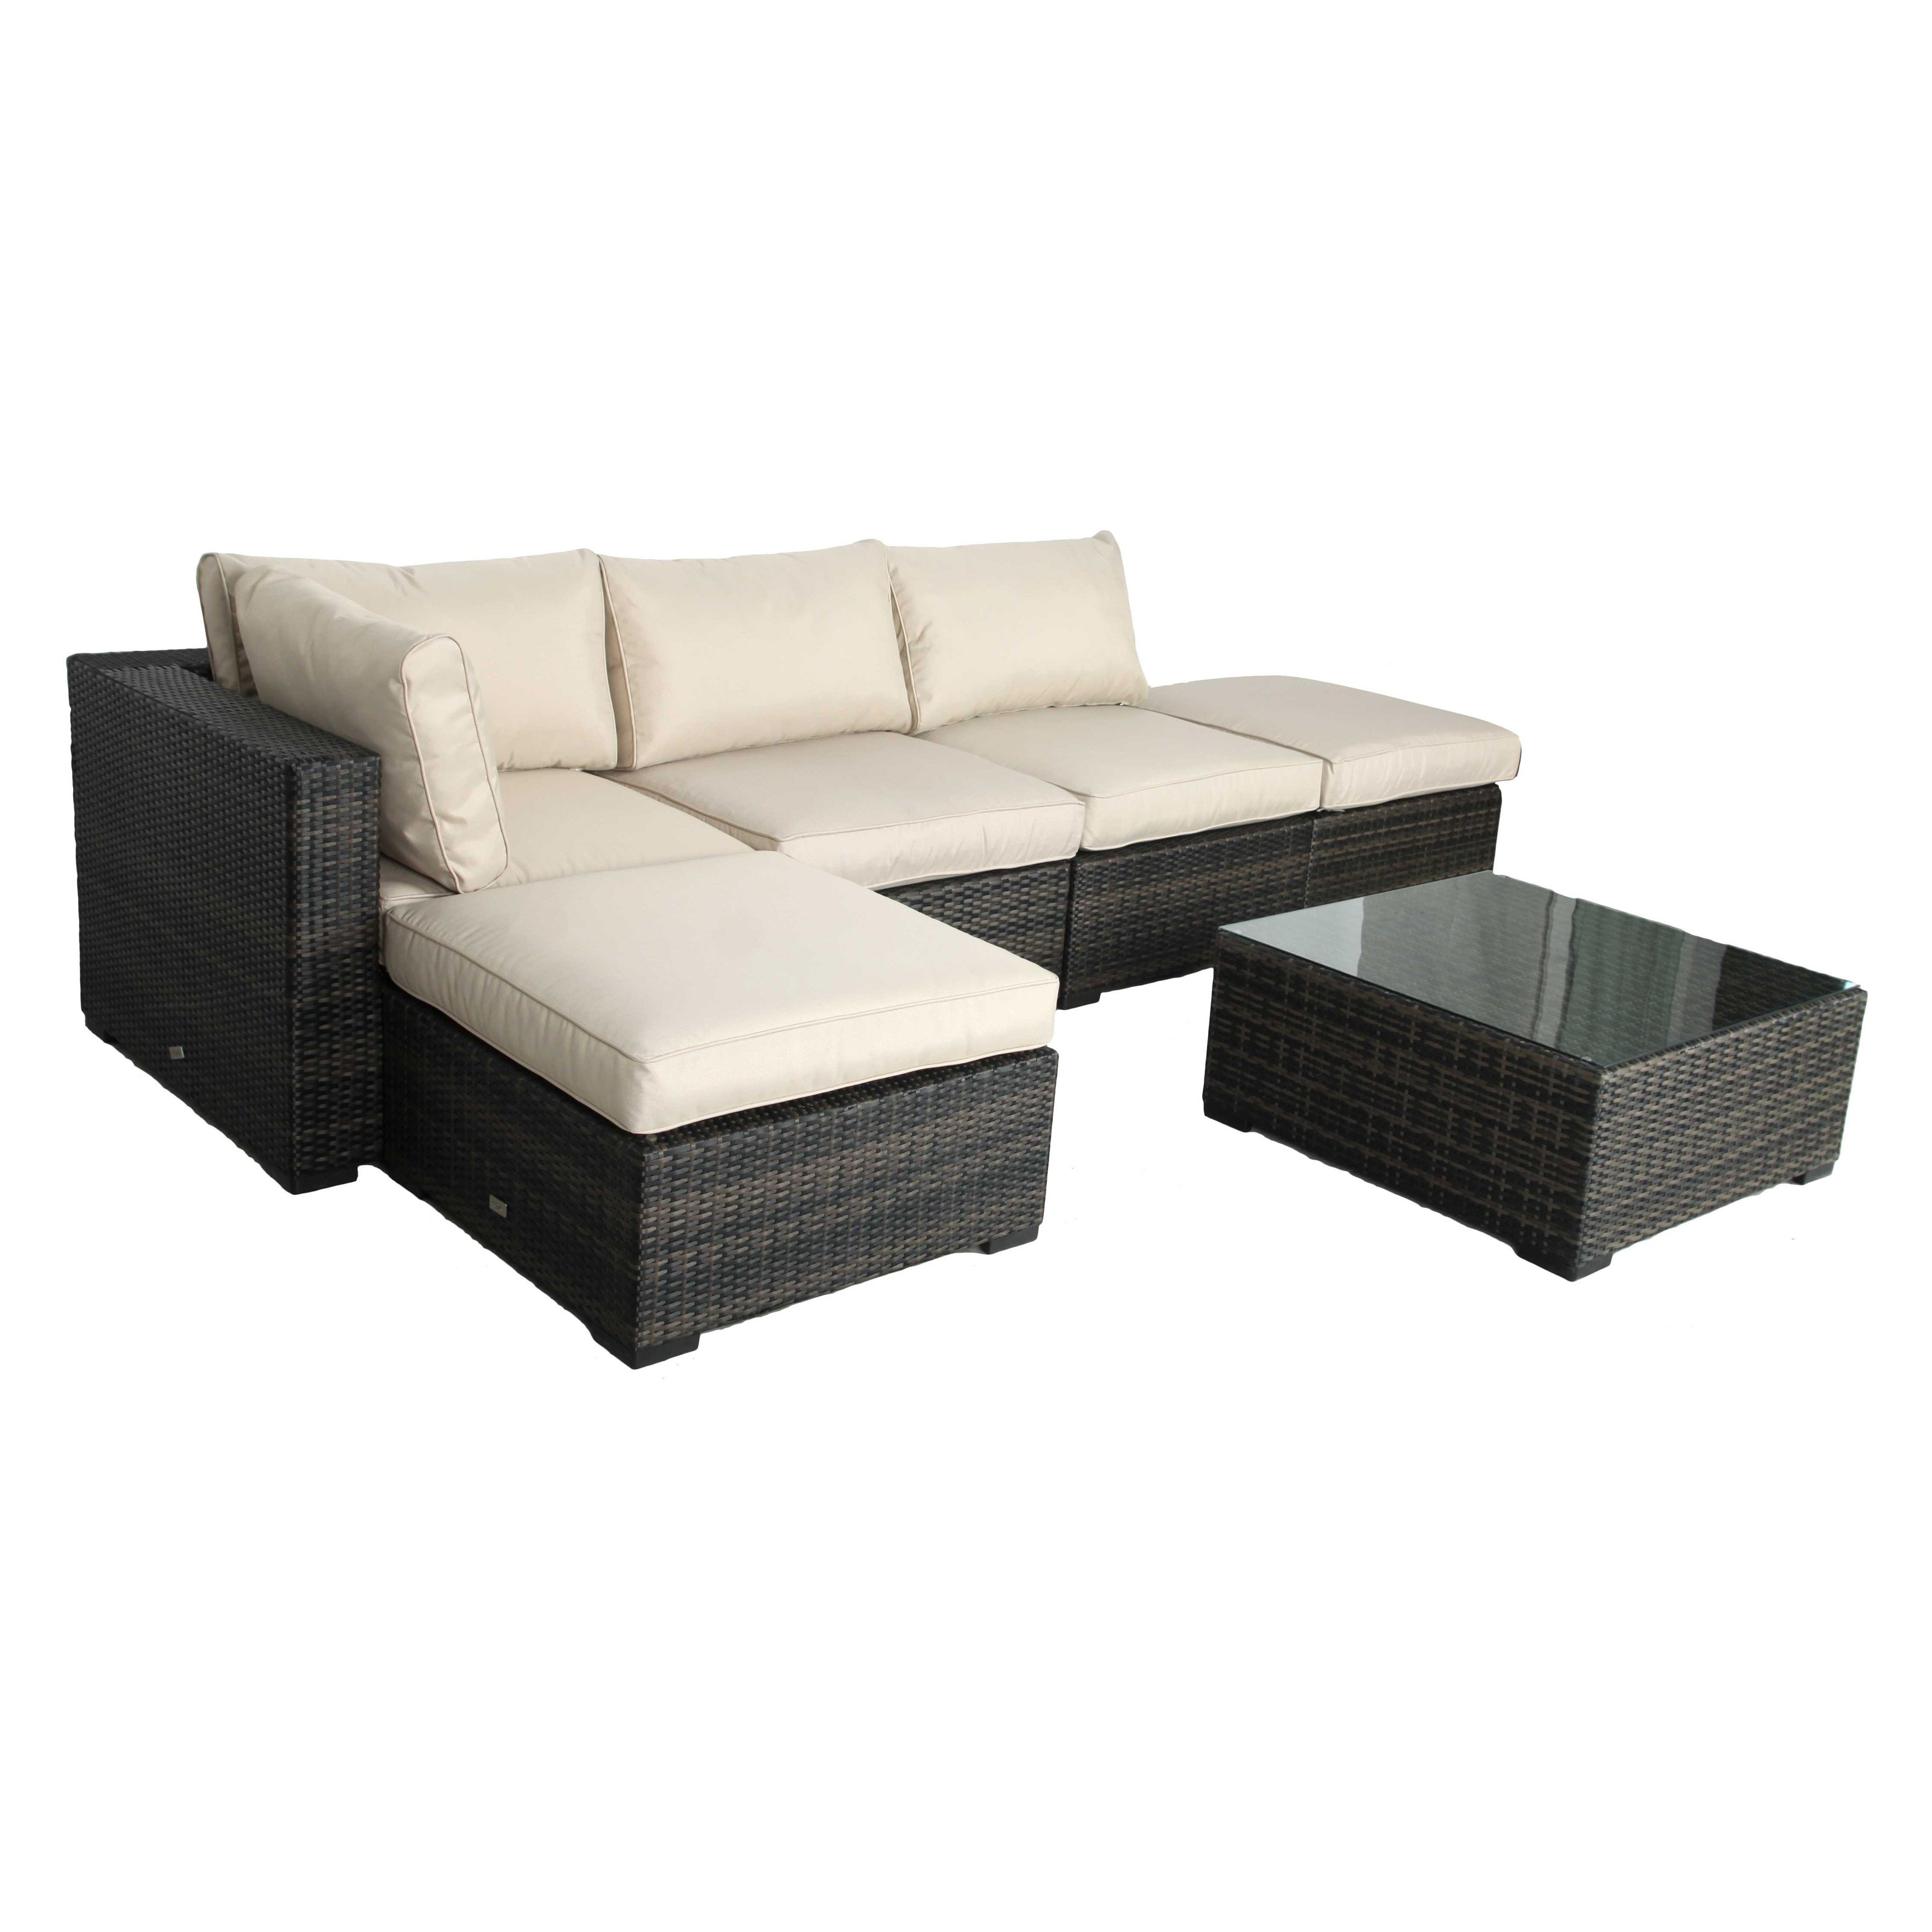 Creative Living South Hampton 6 Piece Wicker Sectional Set with Ottomans by Creative Living